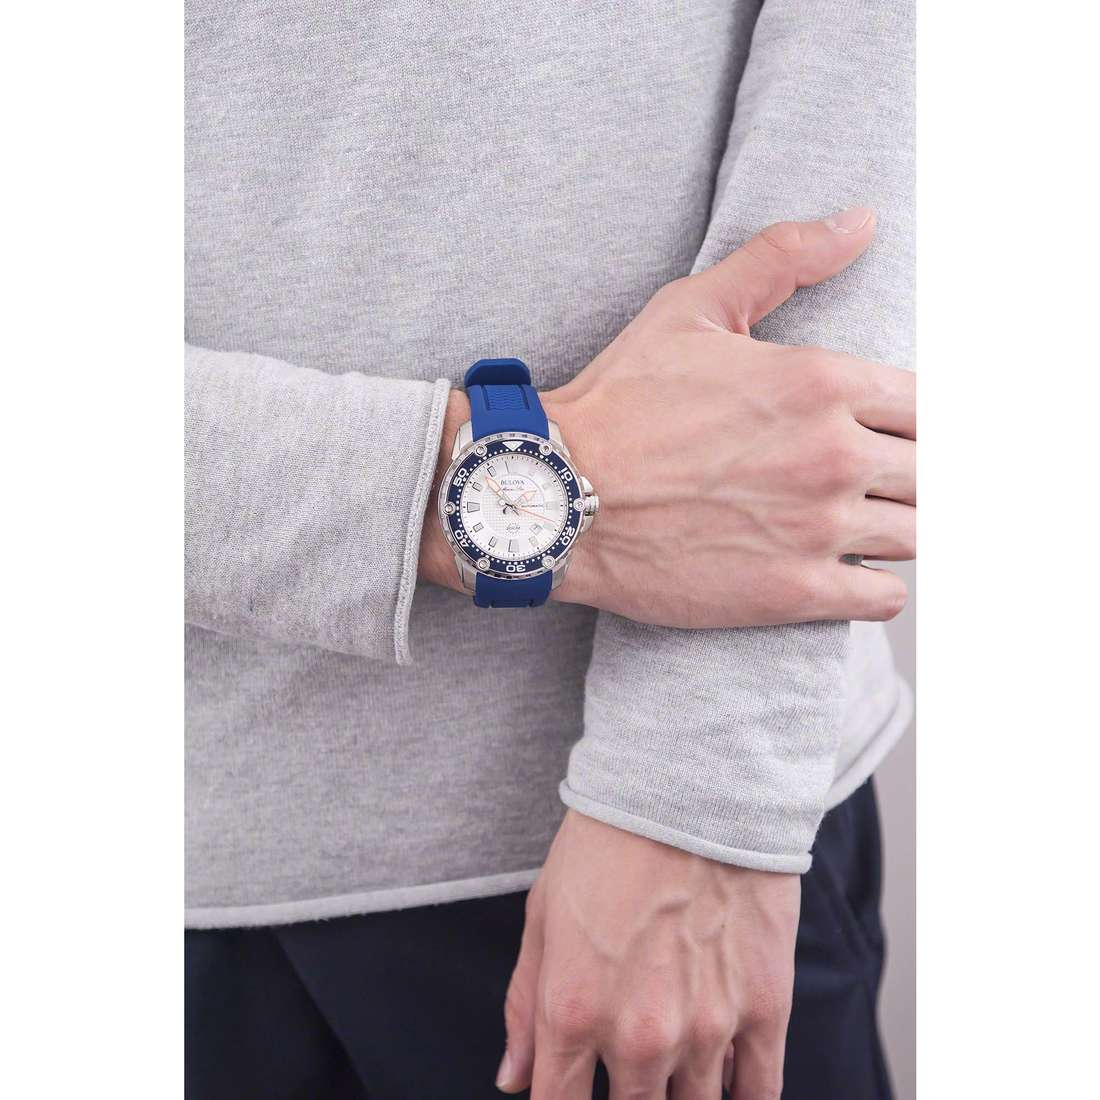 Bulova seul le temps Marine Star homme 98B208 photo wearing